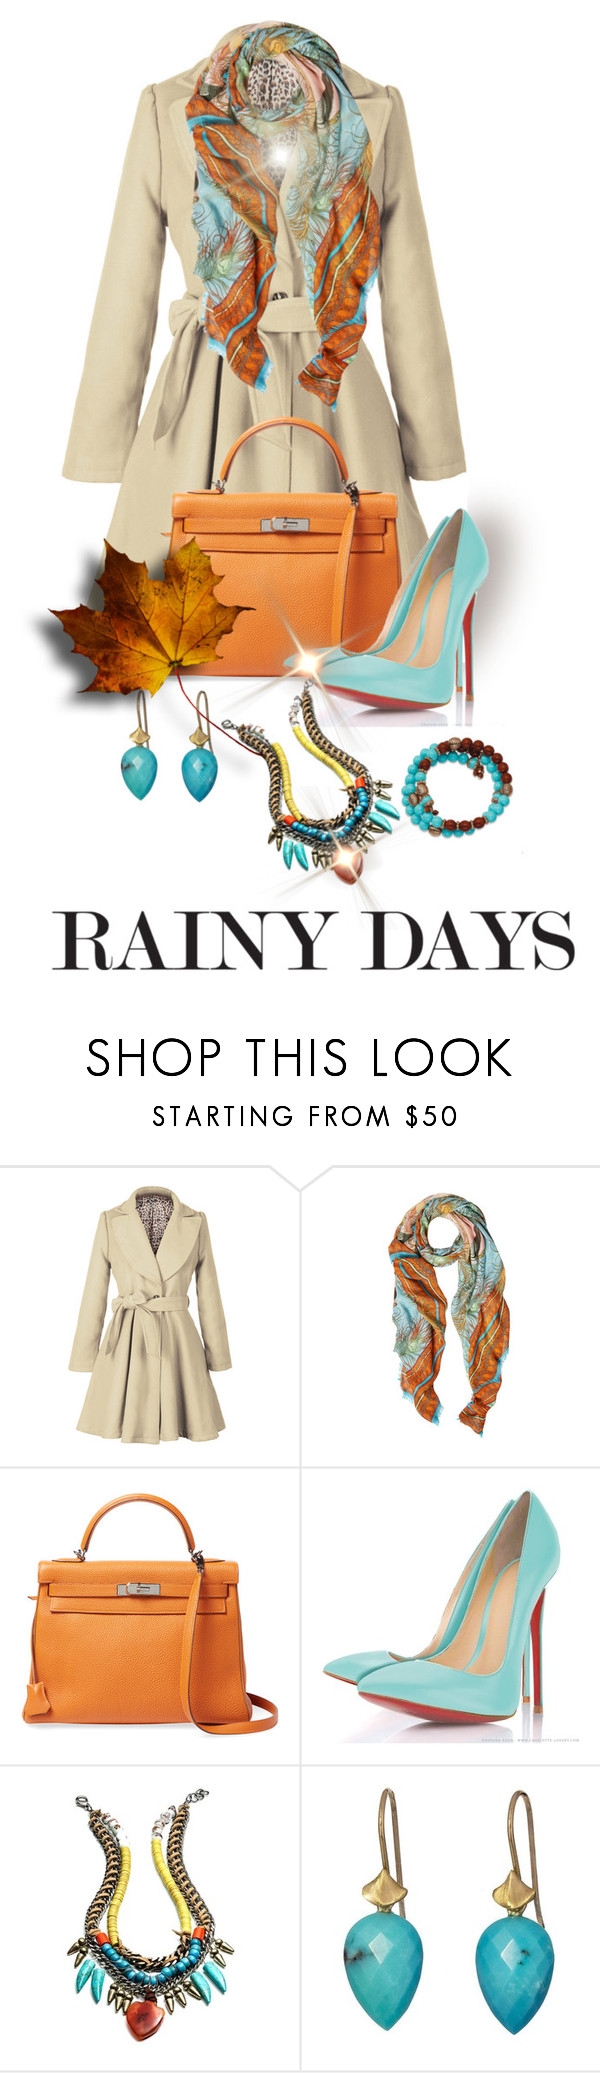 """""""Rainy Day Contest"""" by shamrockclover ❤ liked on Polyvore featuring Matthew Williamson, Hermès, DANNIJO, Annette Ferdinandsen and 1928"""